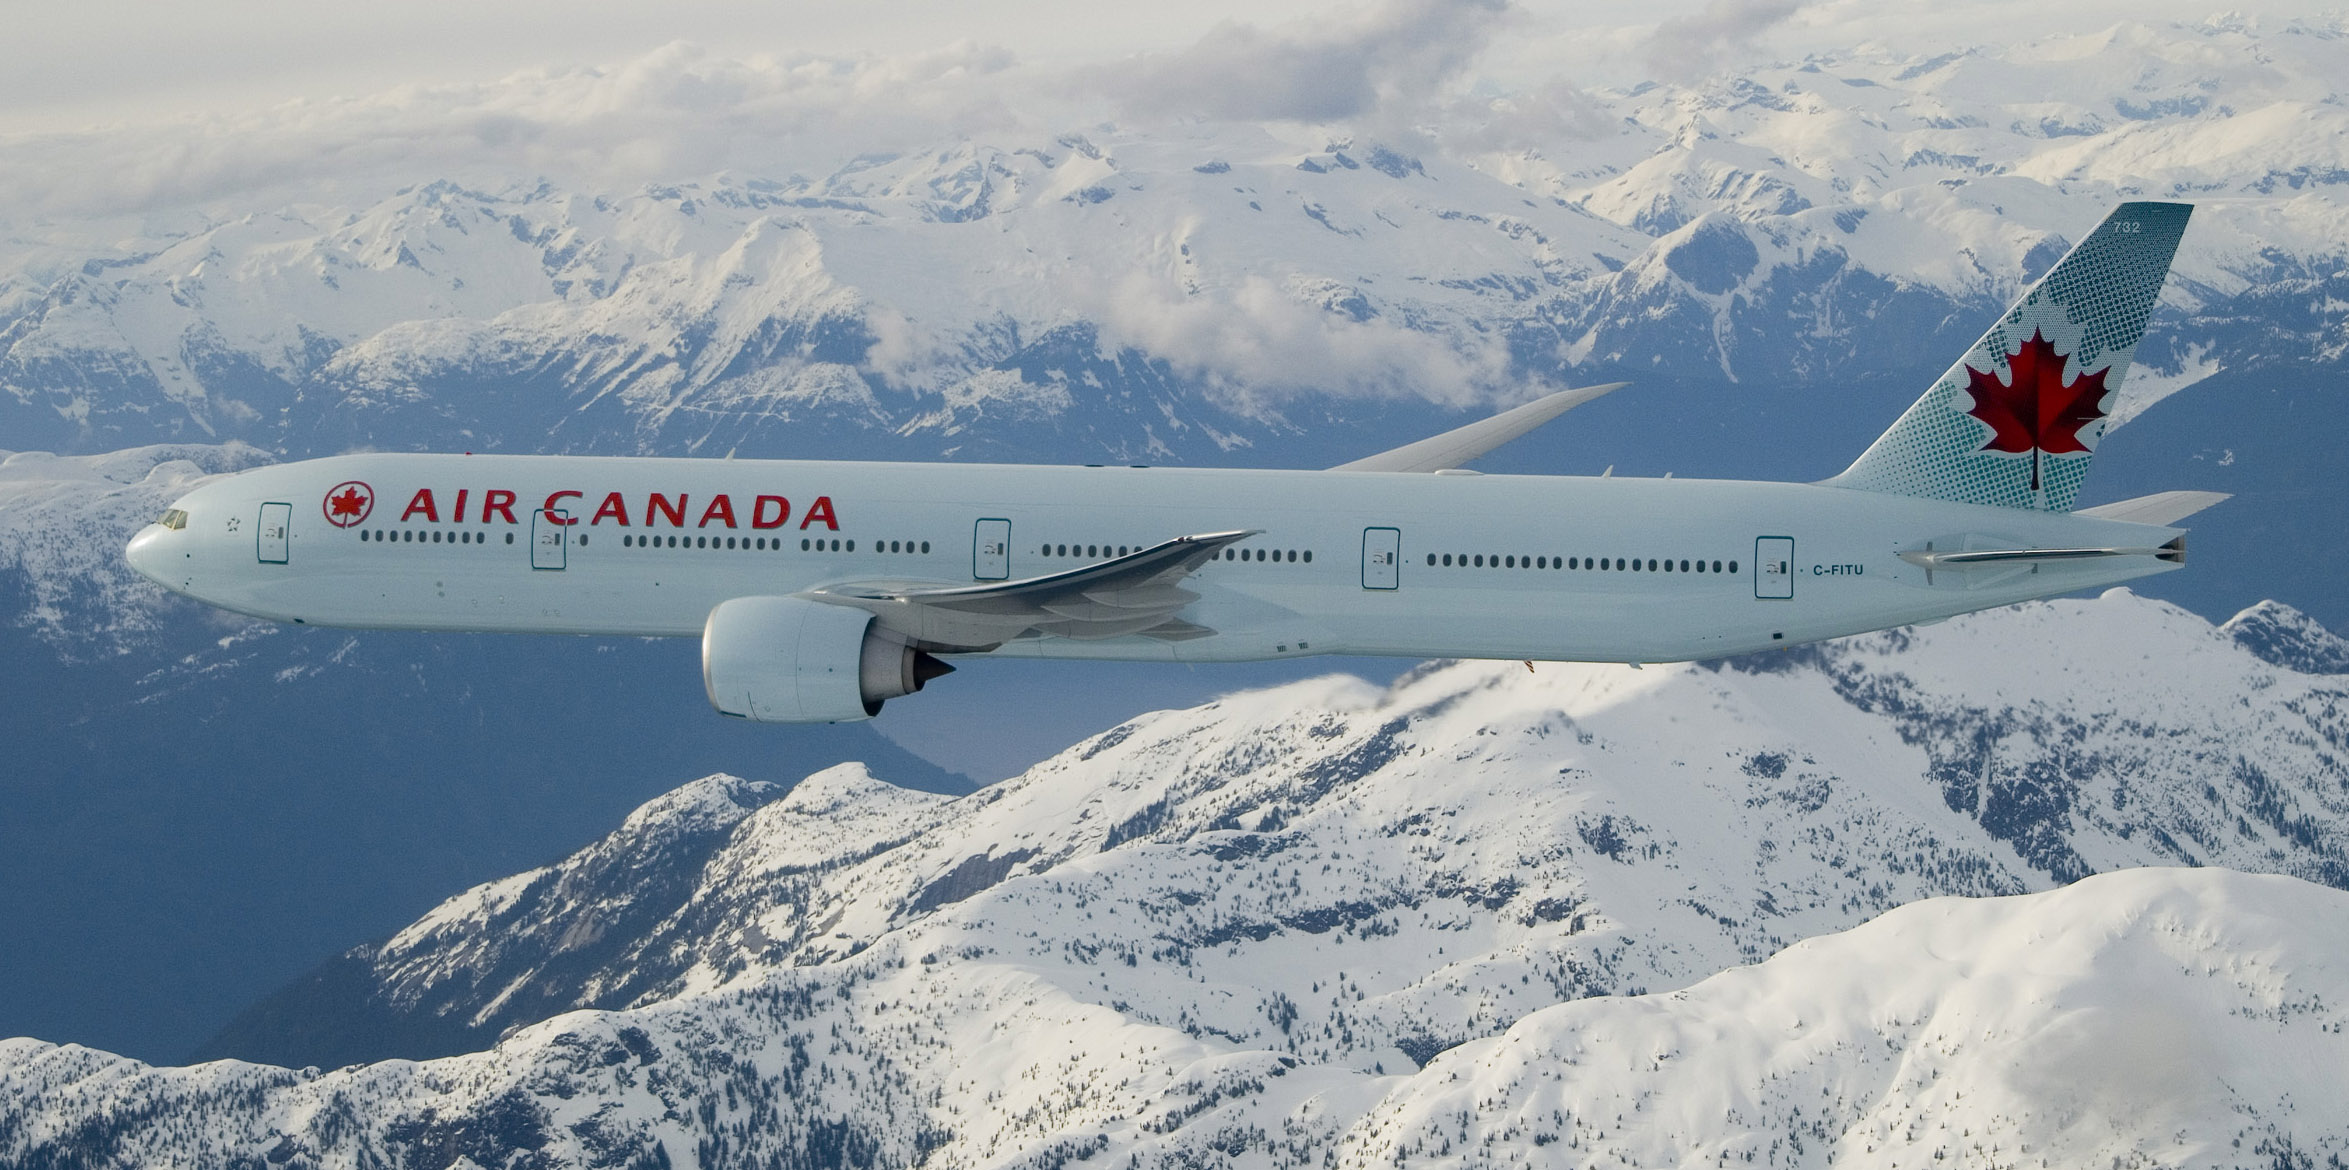 Research papers on air canada